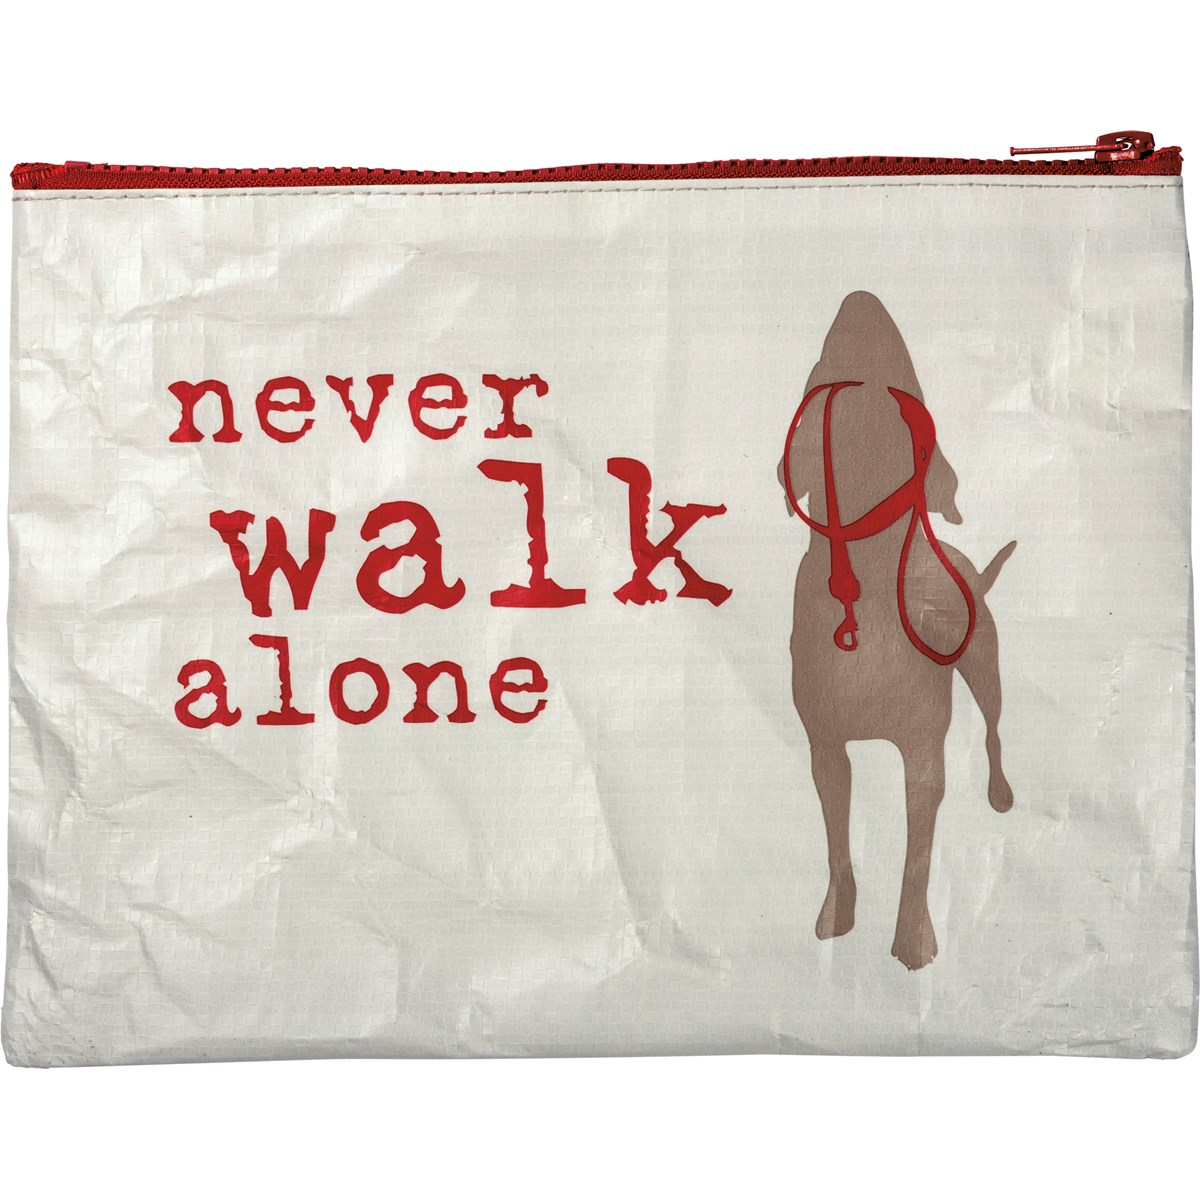 "Zipper Pouch - Never Walk Alone - 9.50"" x 7"" - Post-Consumer Material, Metal"